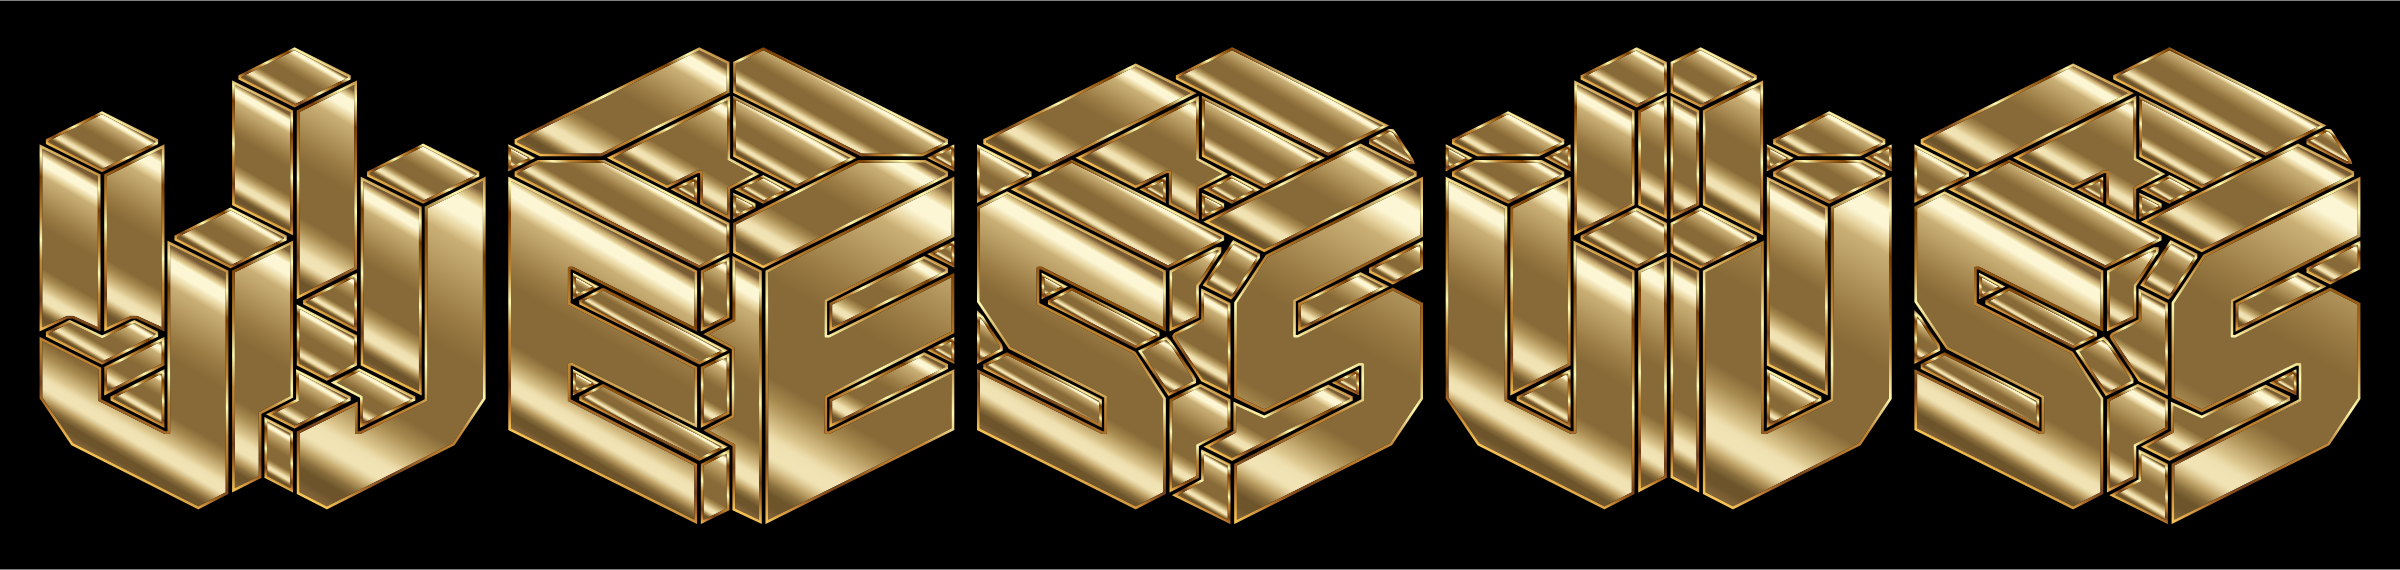 Gold 3D Isometric Jesus Typography by GDJ